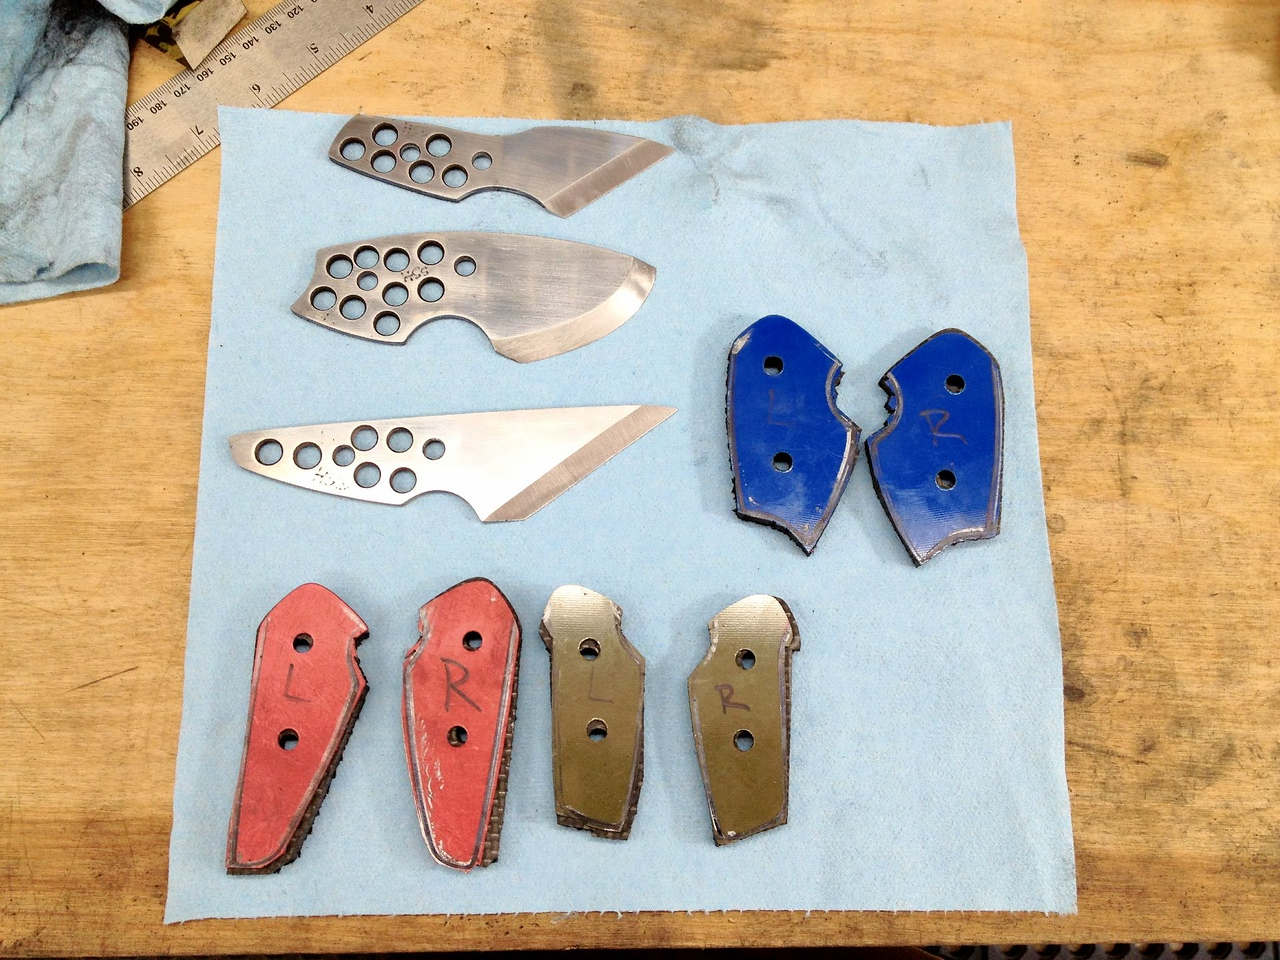 I was able to get all of the scales rough cut, all holes drilled, and the front of the scales shaped and sanded.<br /> <br /> I was hoping to get everything epoxied too, but my body started to crash and it was no longer safe for me to be in the shop.